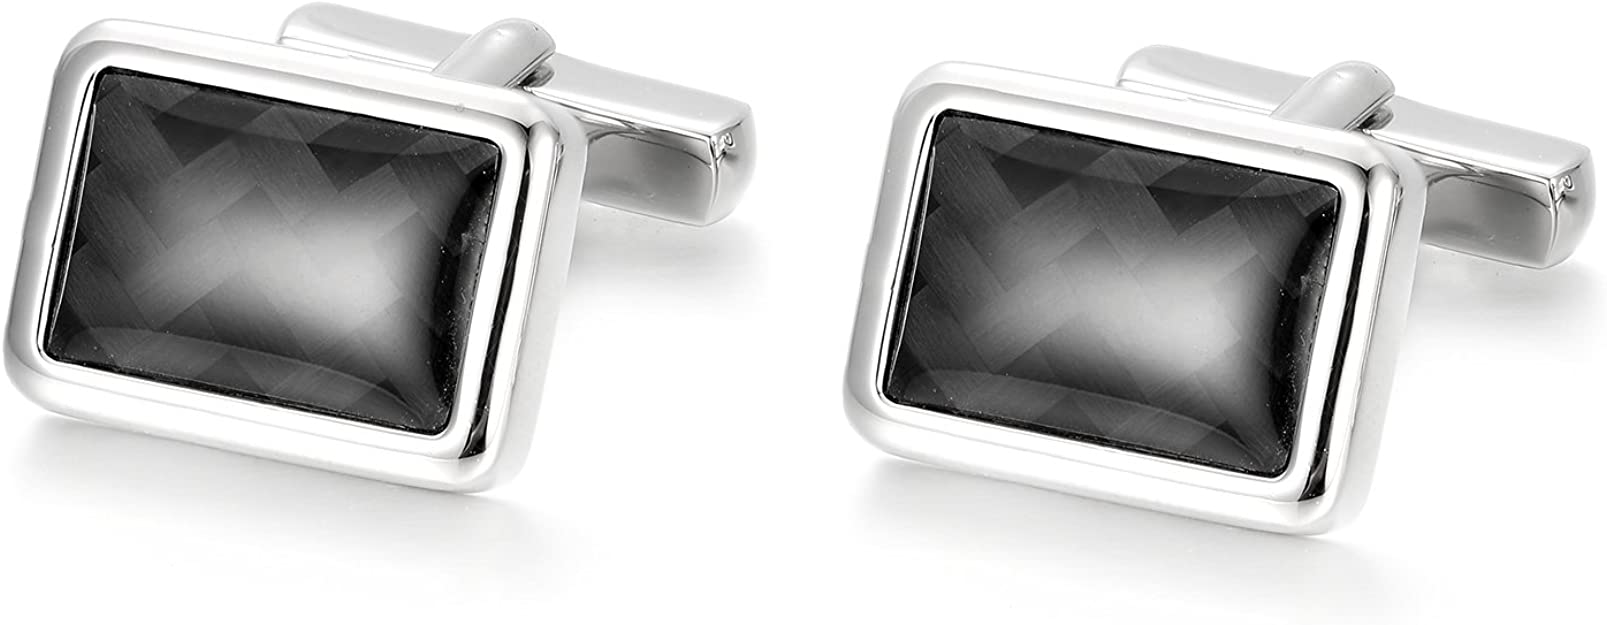 Cufflinks for Men Anfly Mens Cufflinks Unique and Special Patterns to Choose from Rhodium Plated 100/% Handcrafted for Wedding Business Shirts